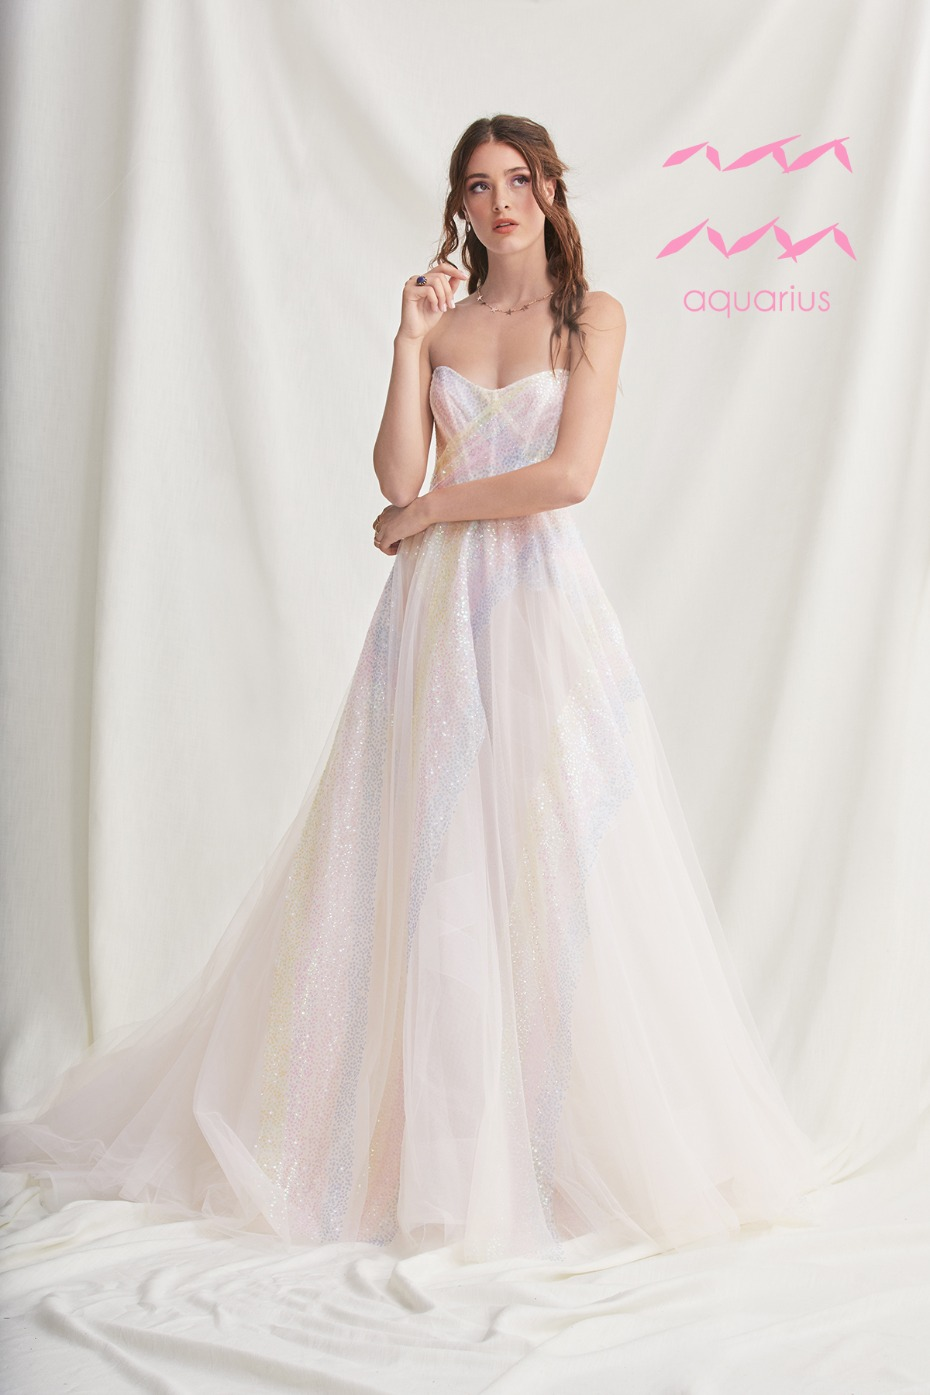 rainbow sparkle wedding dress for the Aquarius Zodiac